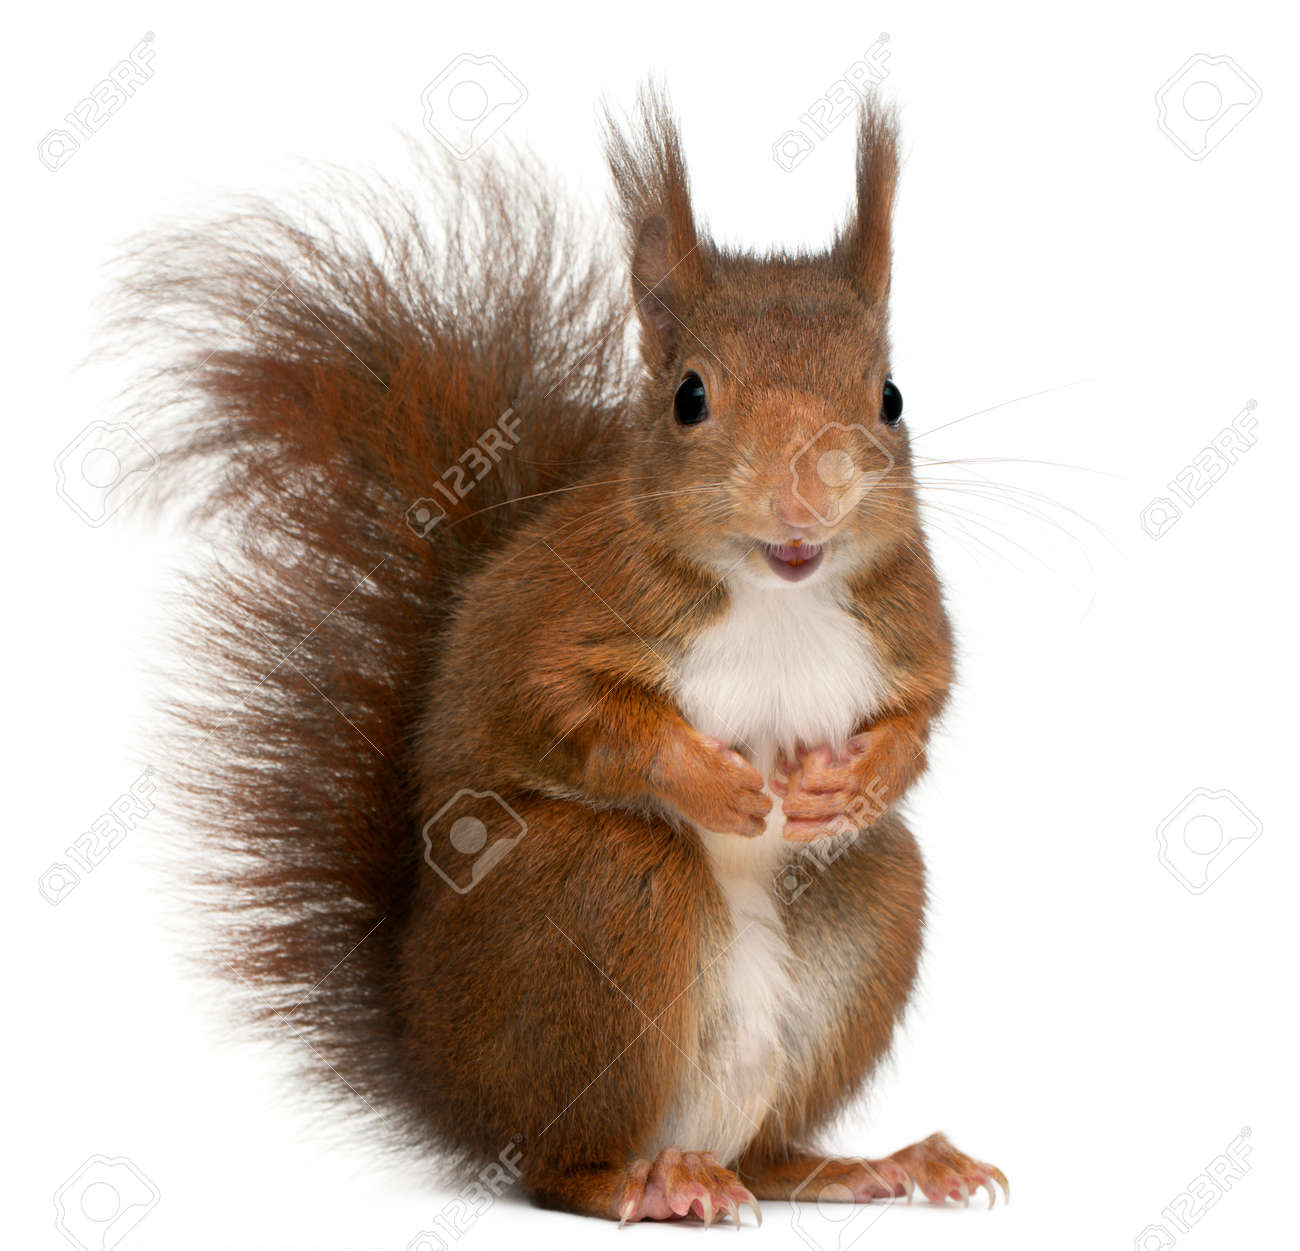 Eurasian red squirrel, Sciurus vulgaris, 4 years old, in front of white background - 89679804